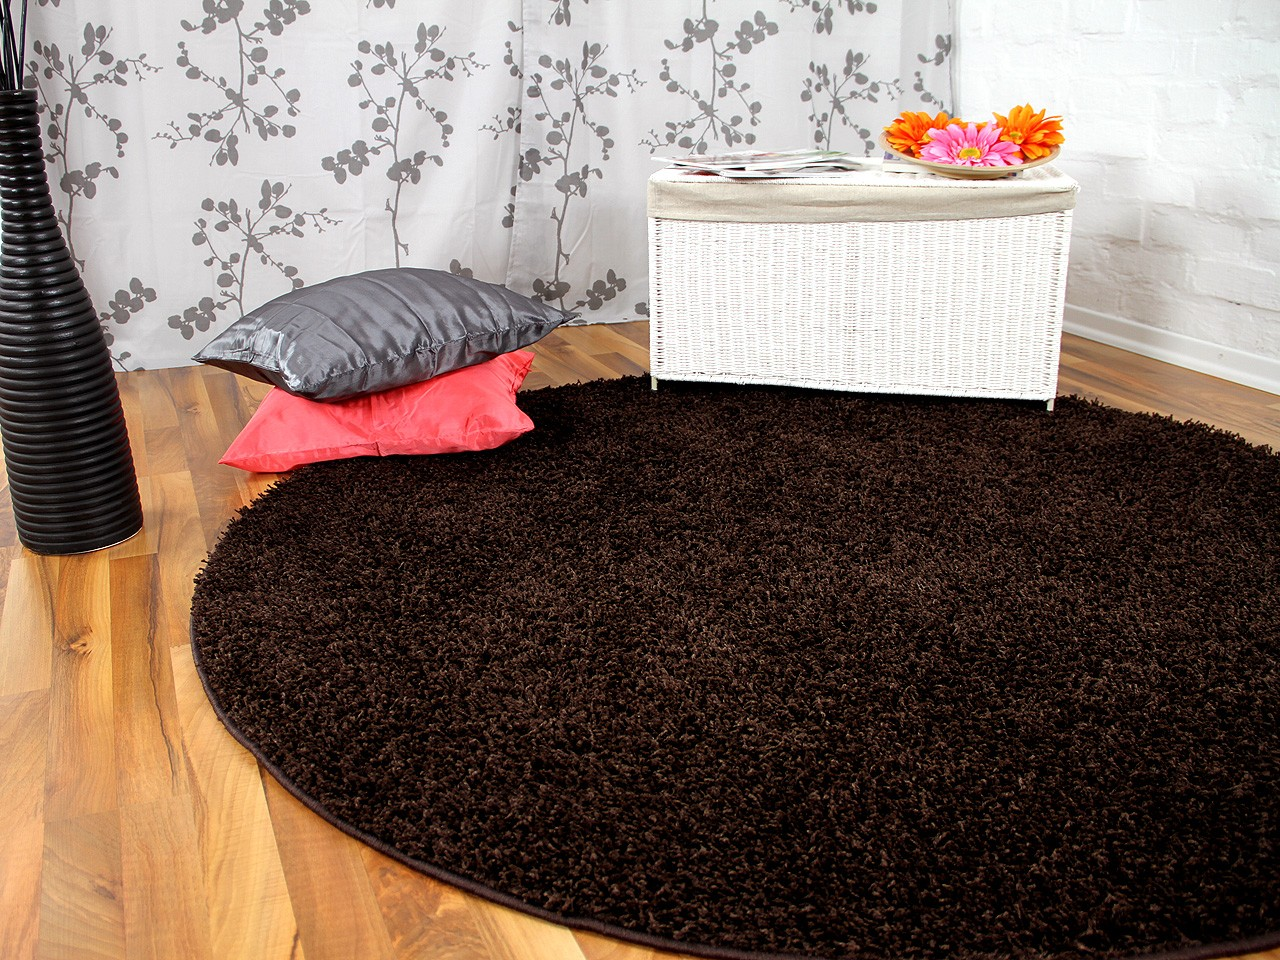 hochflor langflor teppich shaggy nova braun rund sonderaktion teppiche hochflor langflor. Black Bedroom Furniture Sets. Home Design Ideas